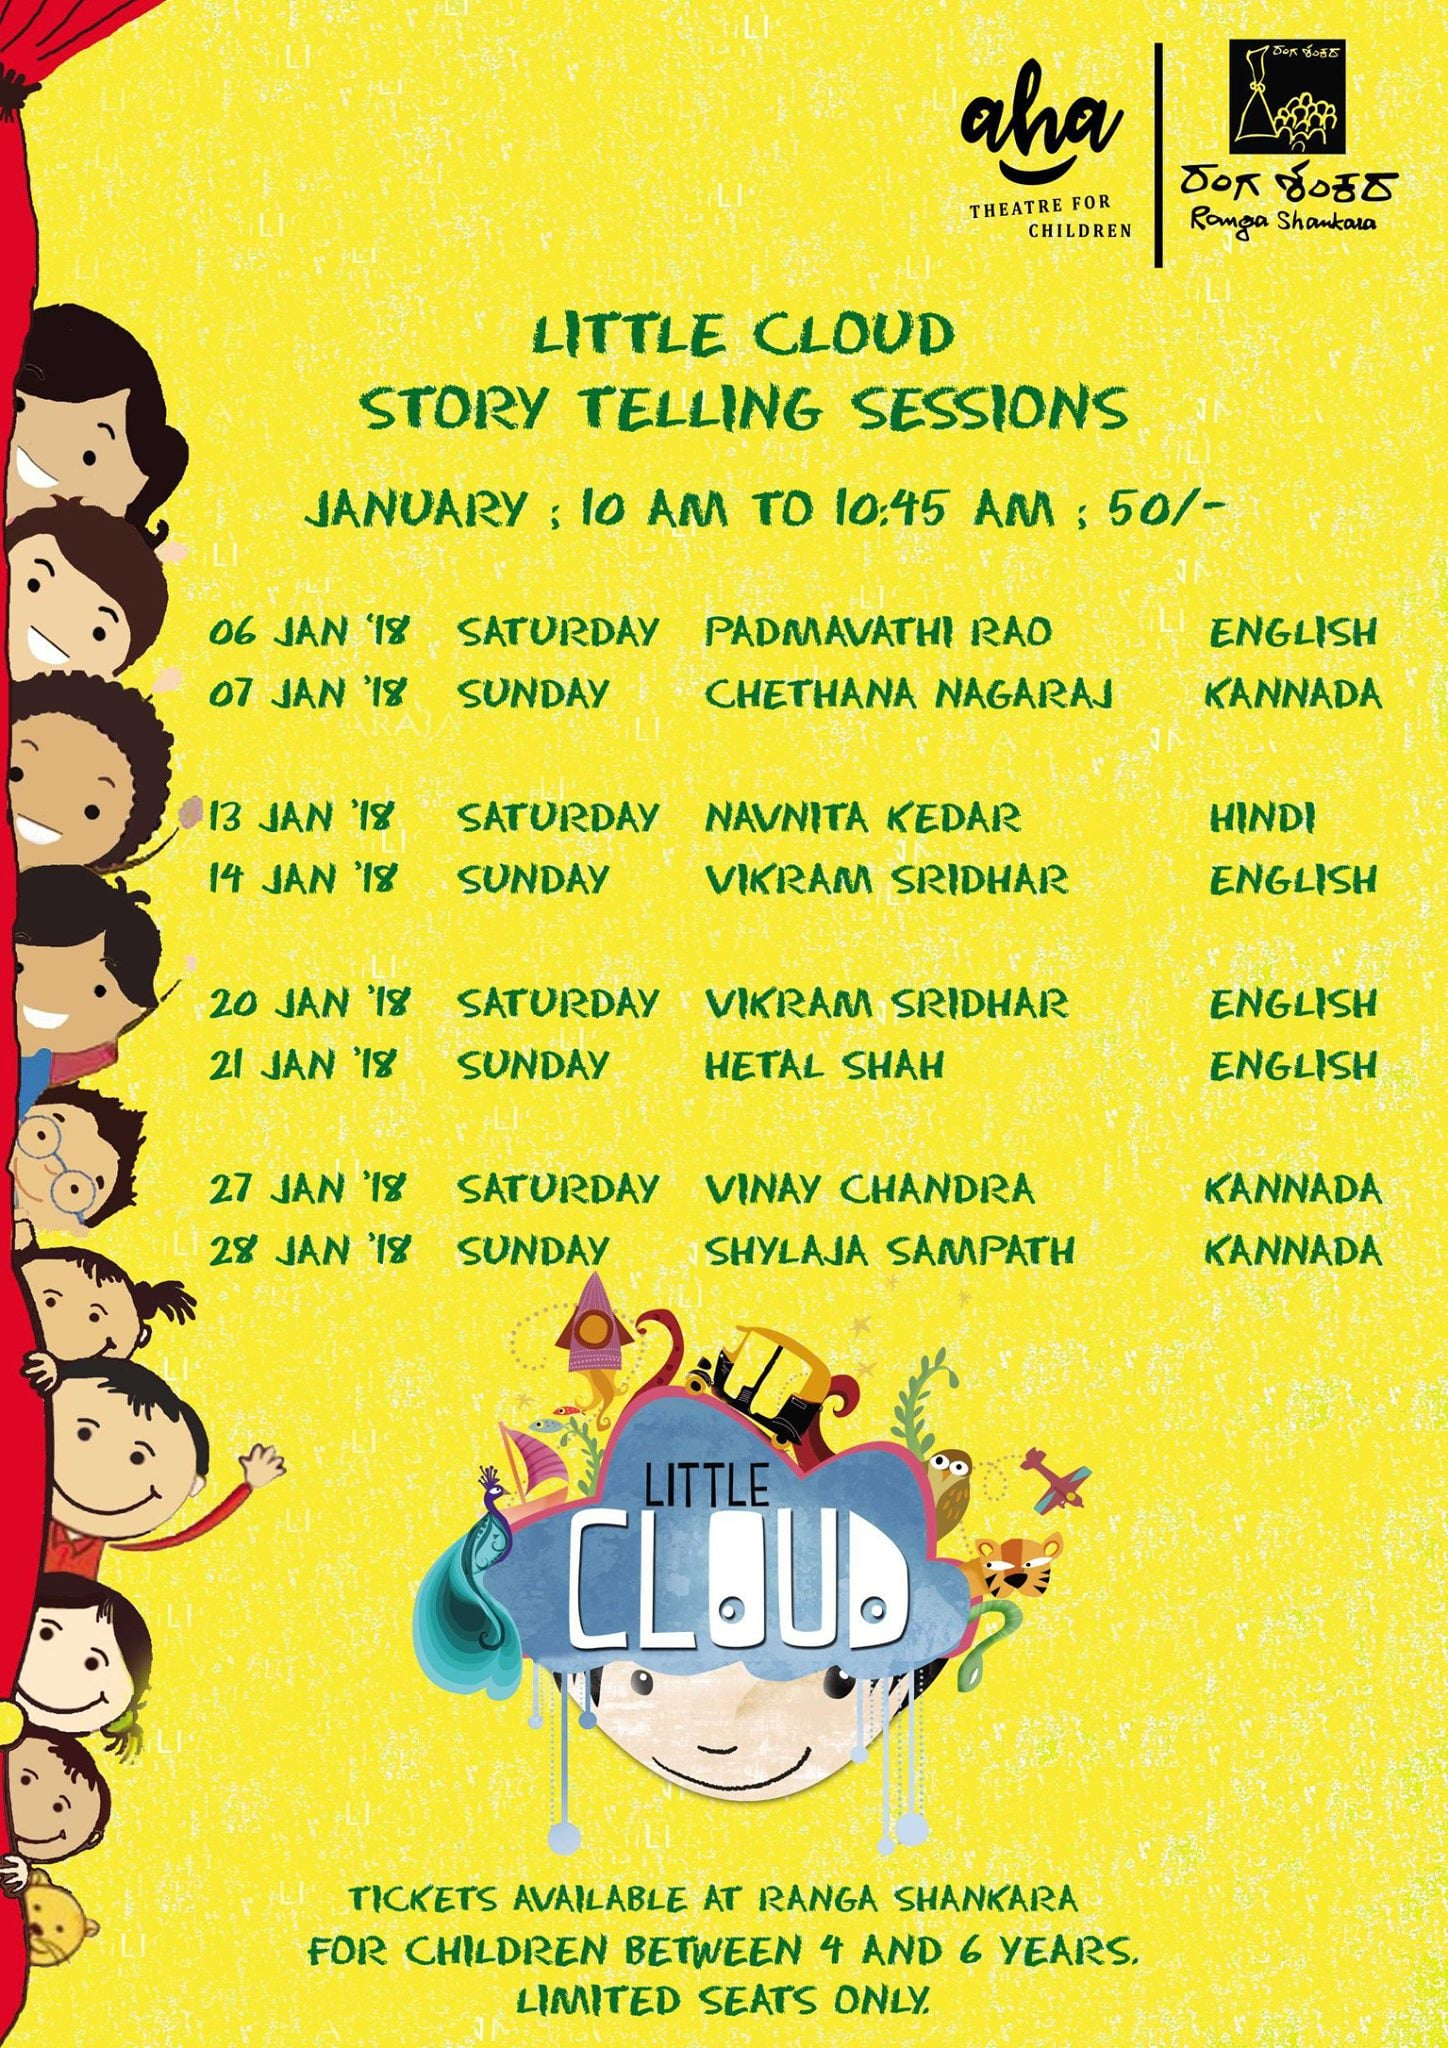 Rangashankara Little Cloud Storytelling